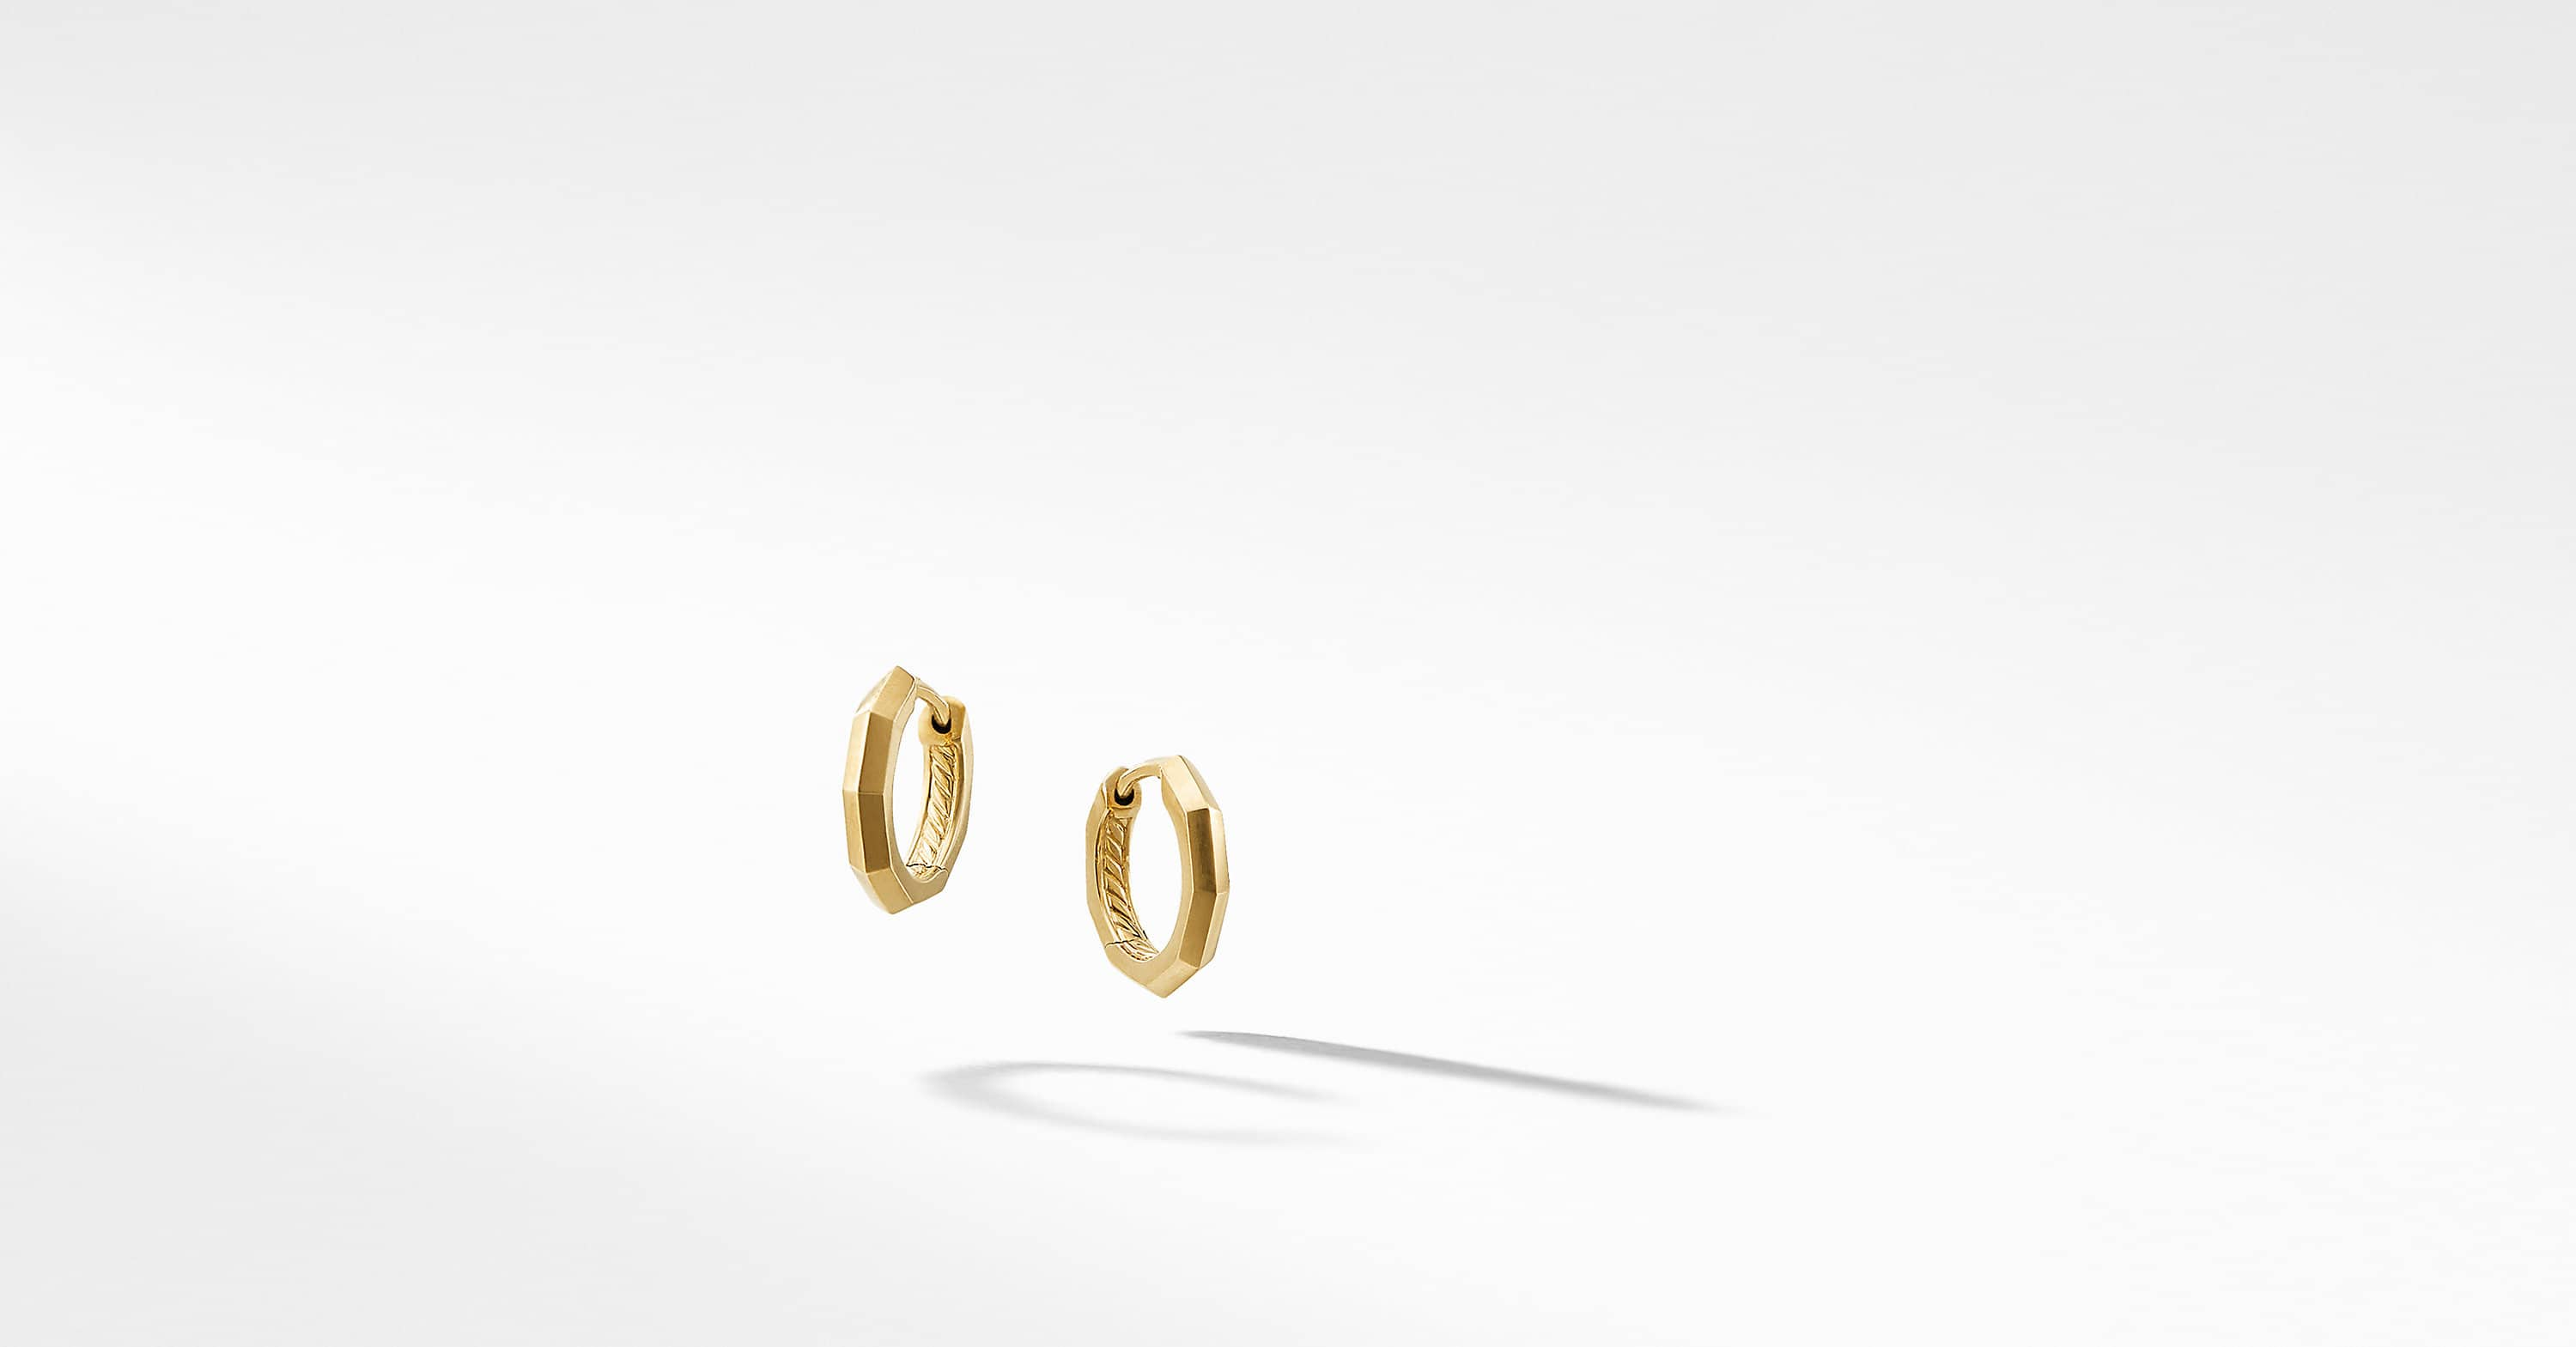 Stax Faceted Huggie Hoop Earrings in 18K Gold